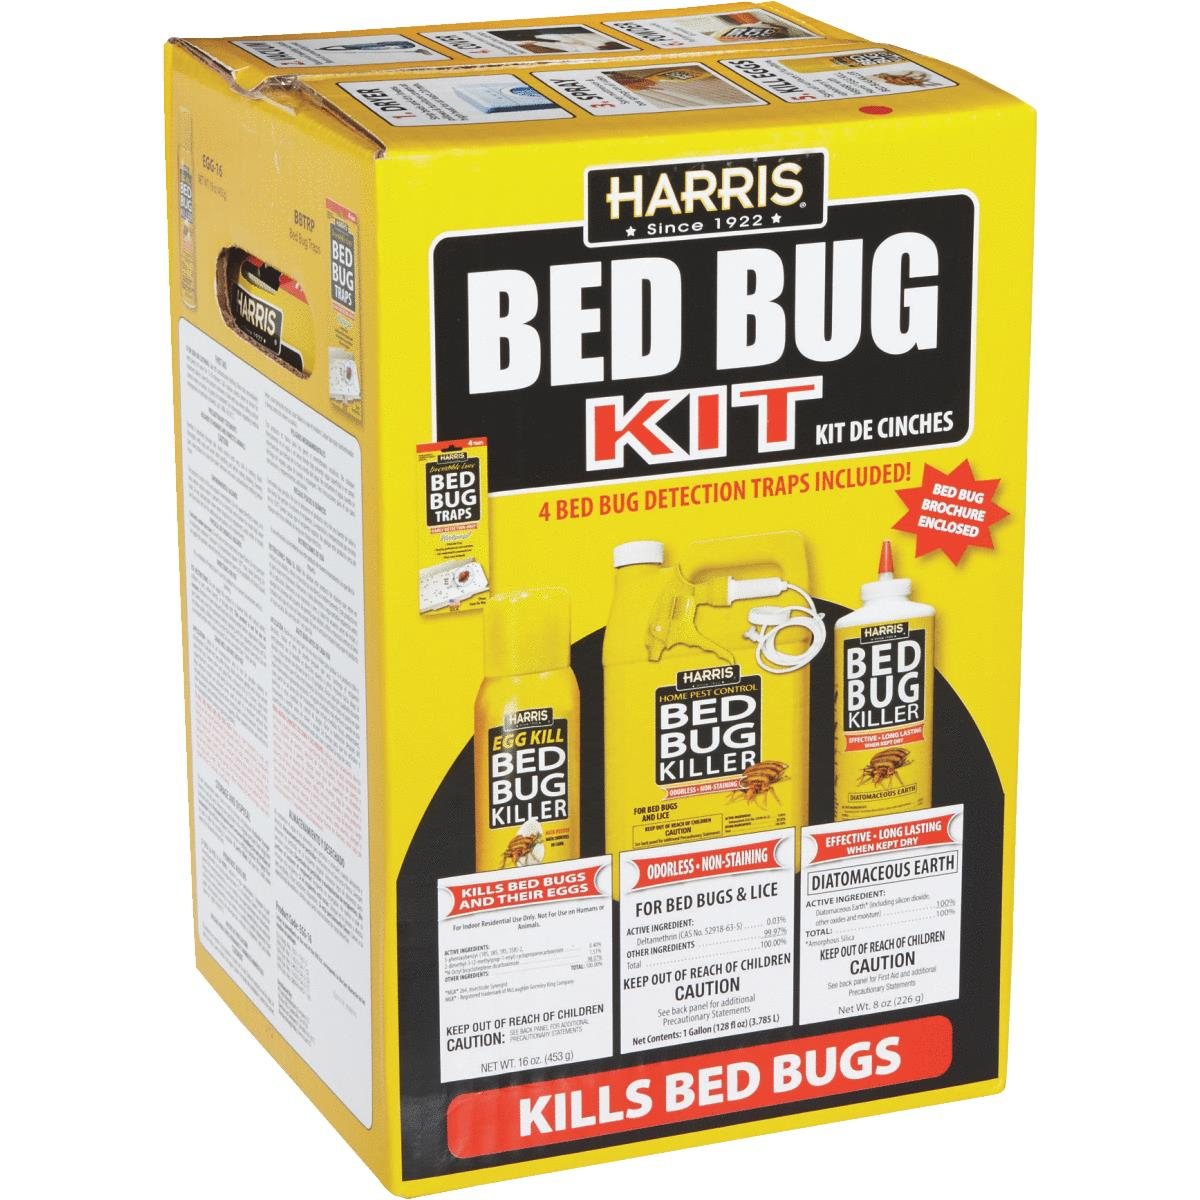 harris bedbug killer kit - walmart